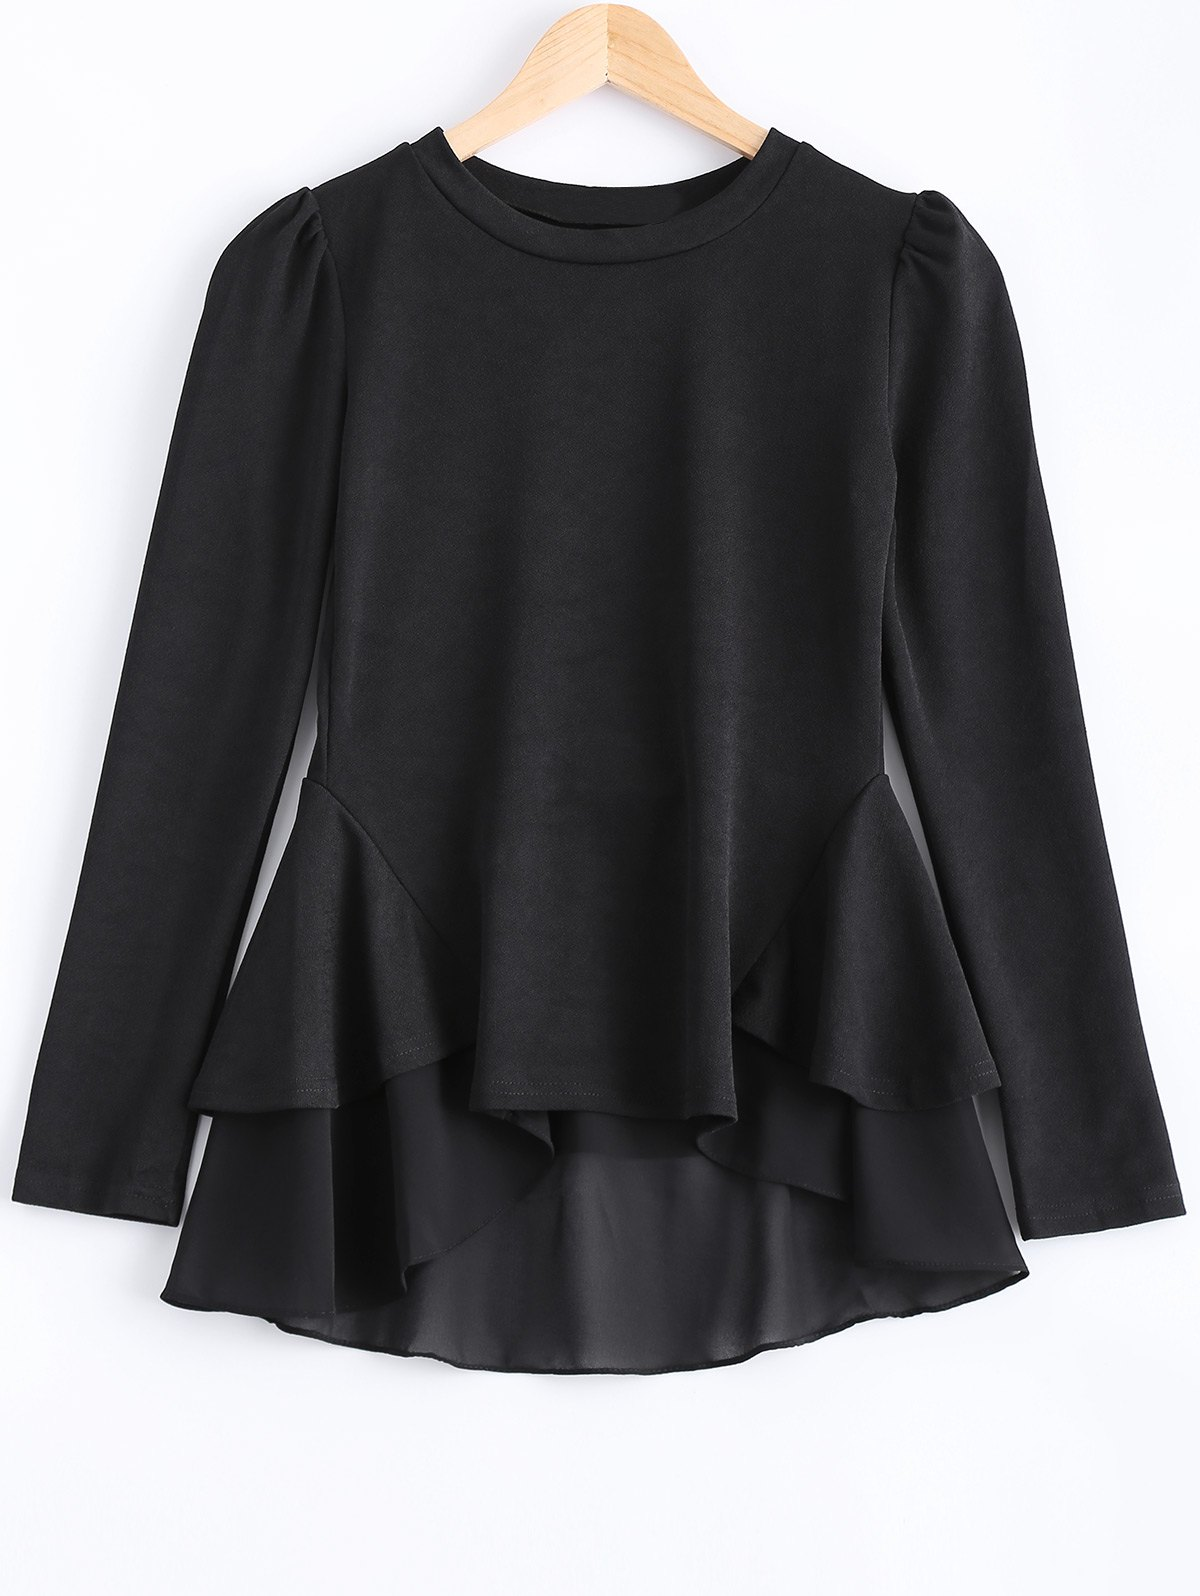 Simple Pure Color Flounce Layered Top For Women